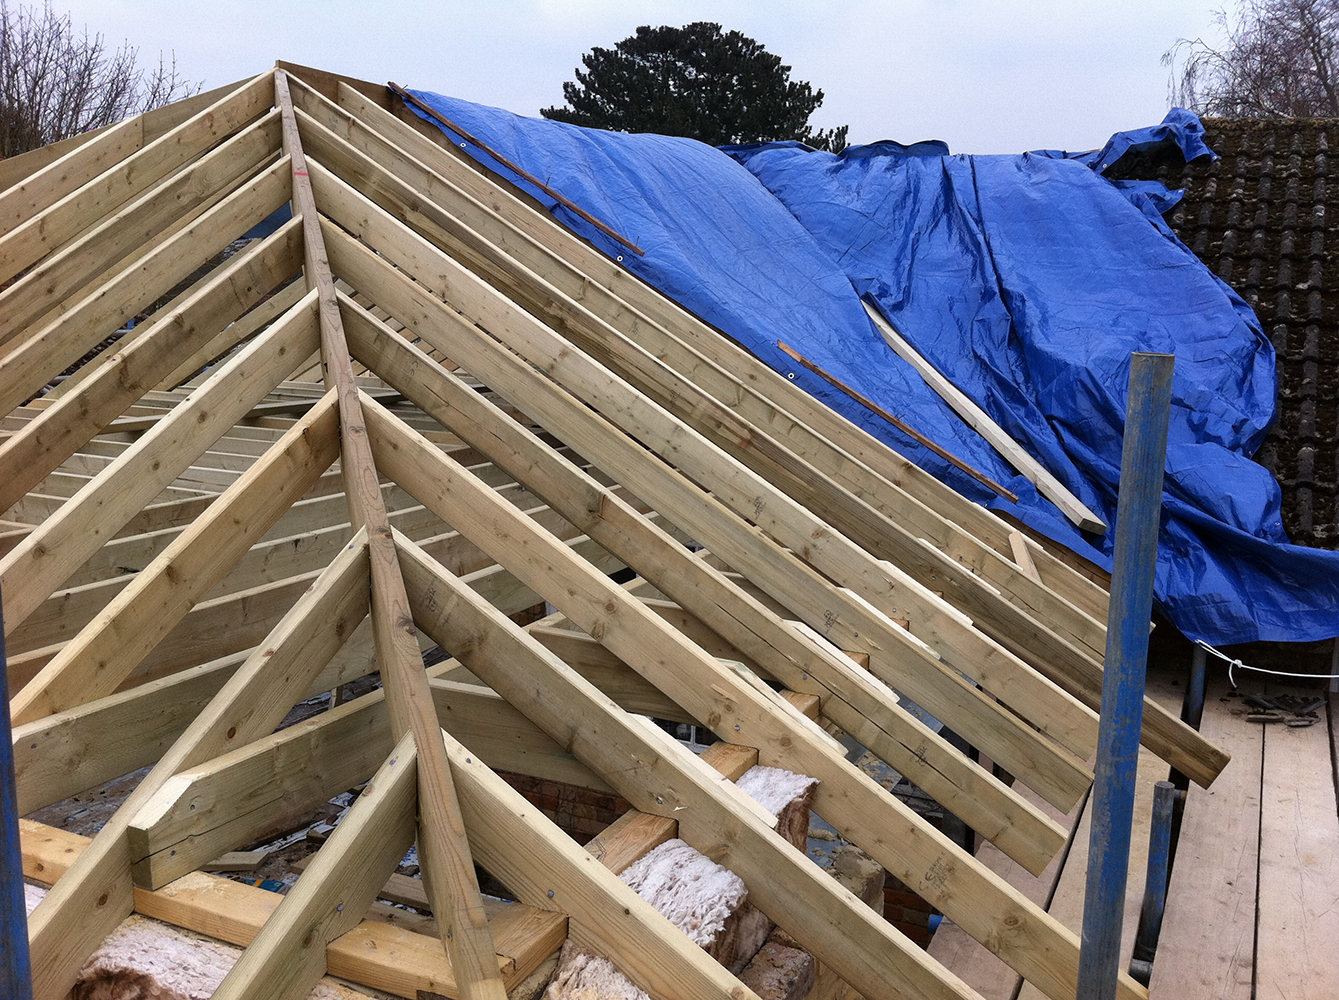 Cut and pitch roof hip